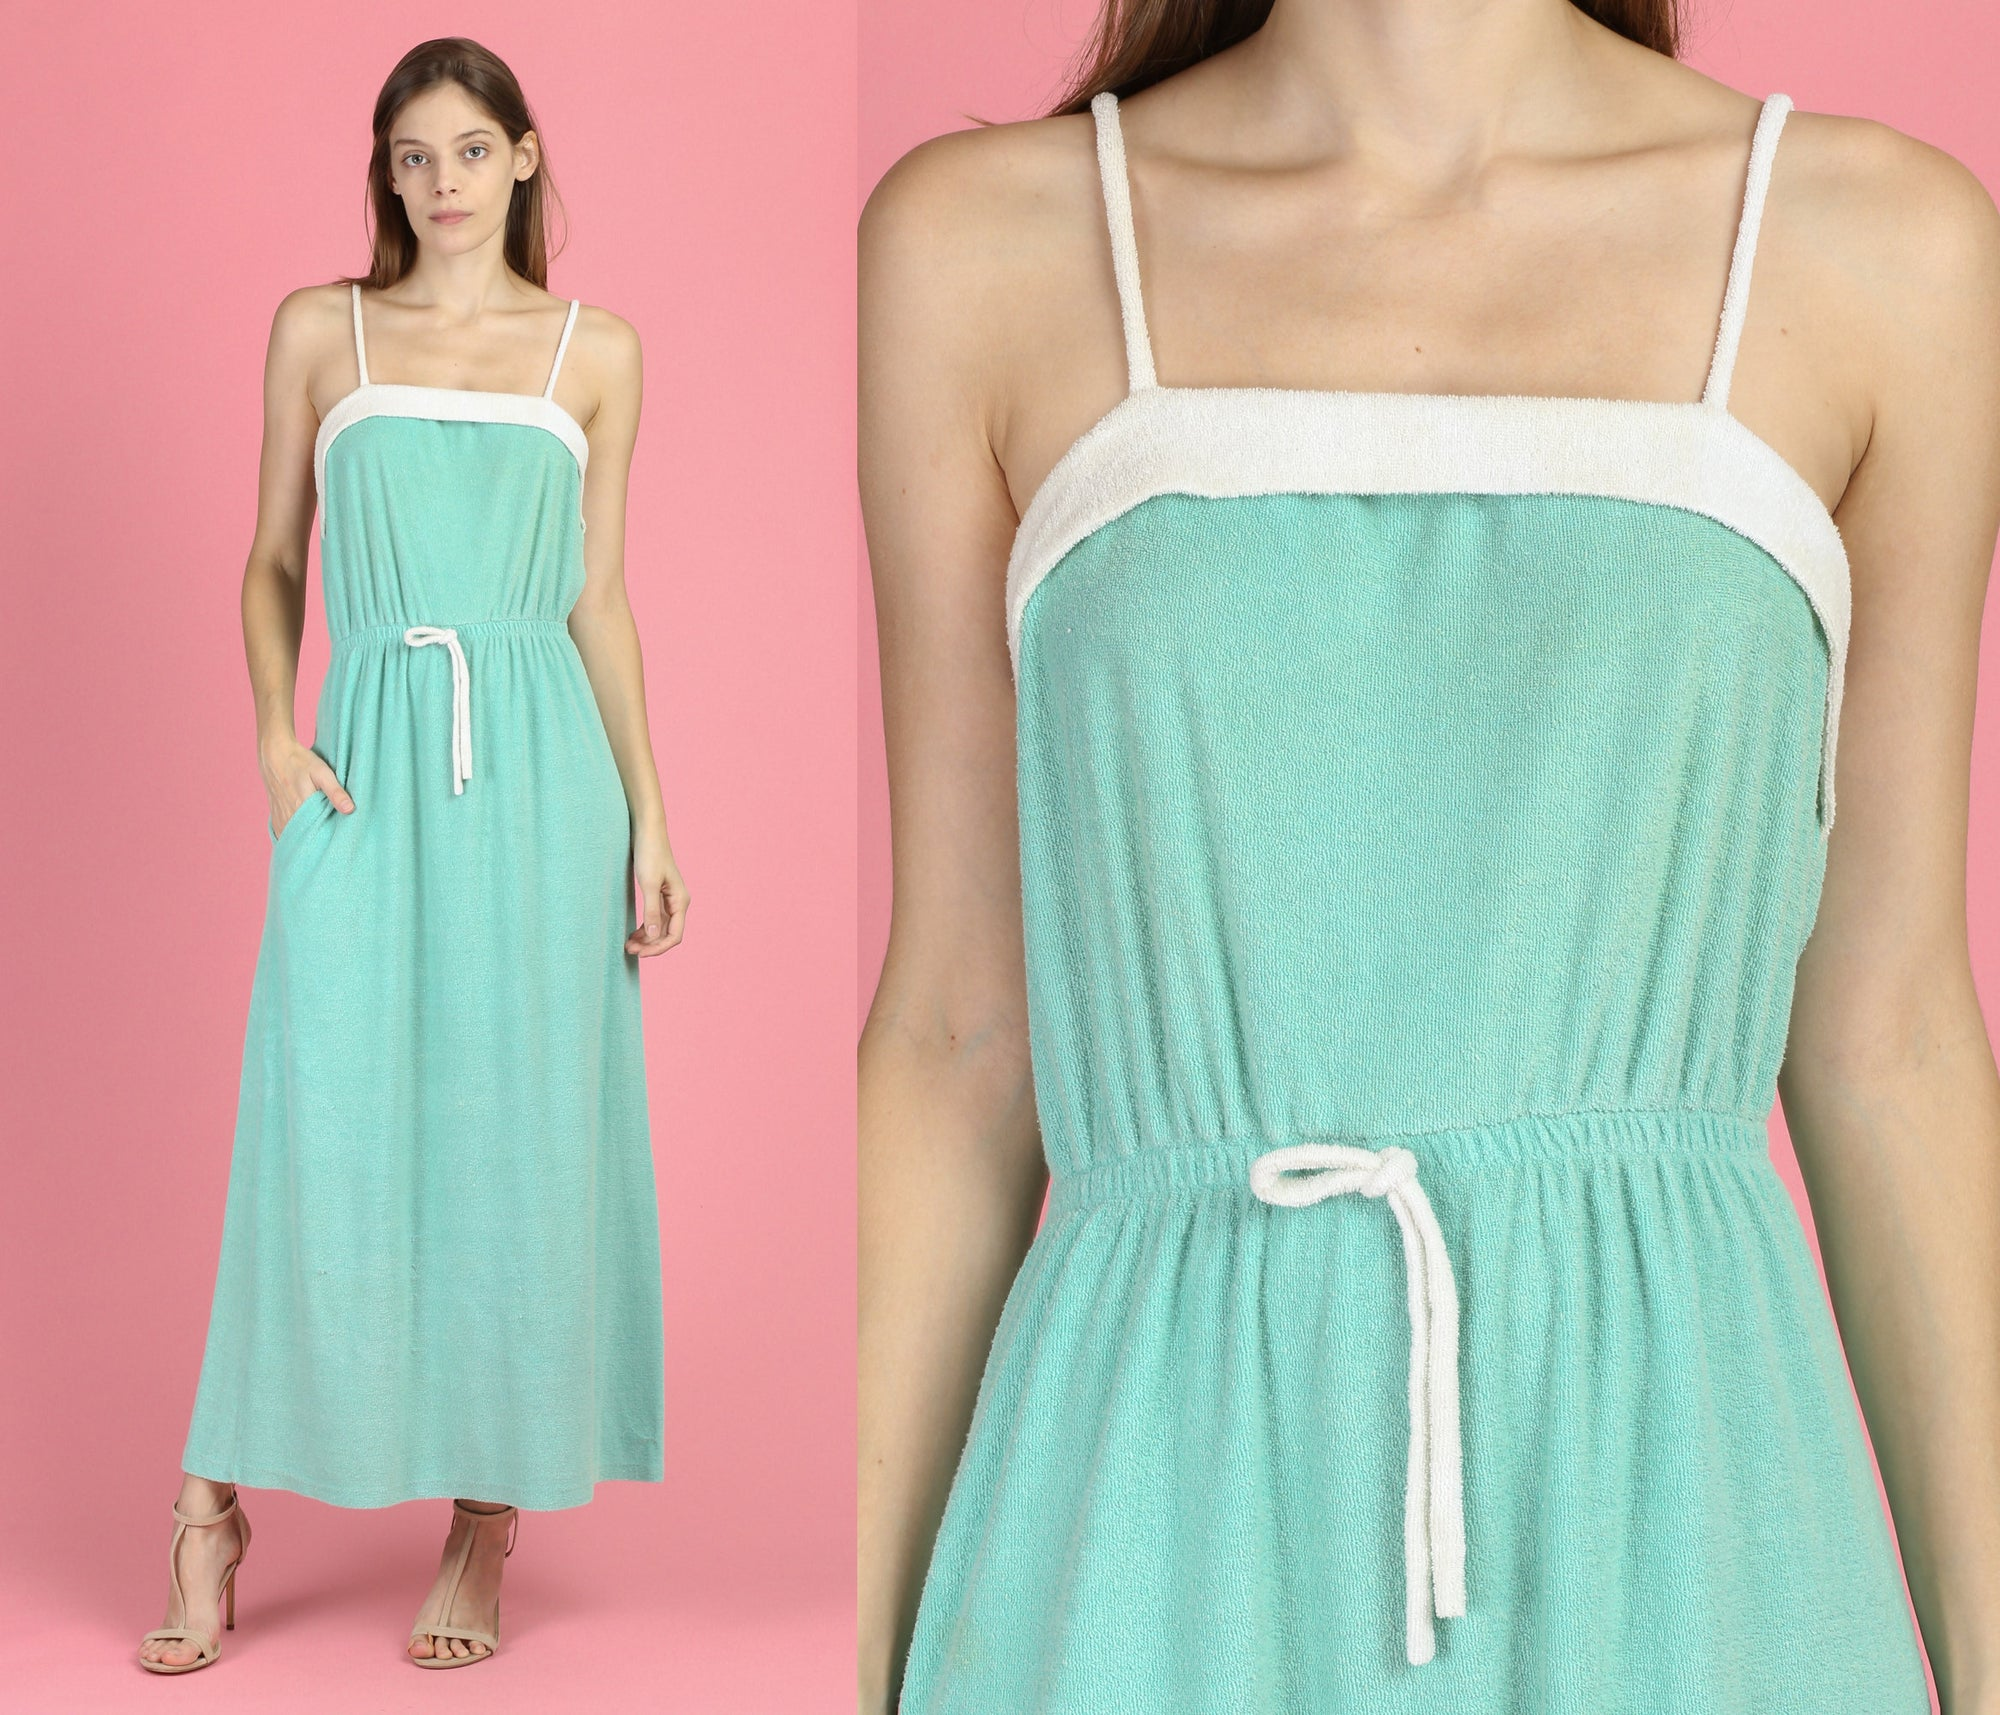 70s Mint Green Terrycloth Sundress - Medium